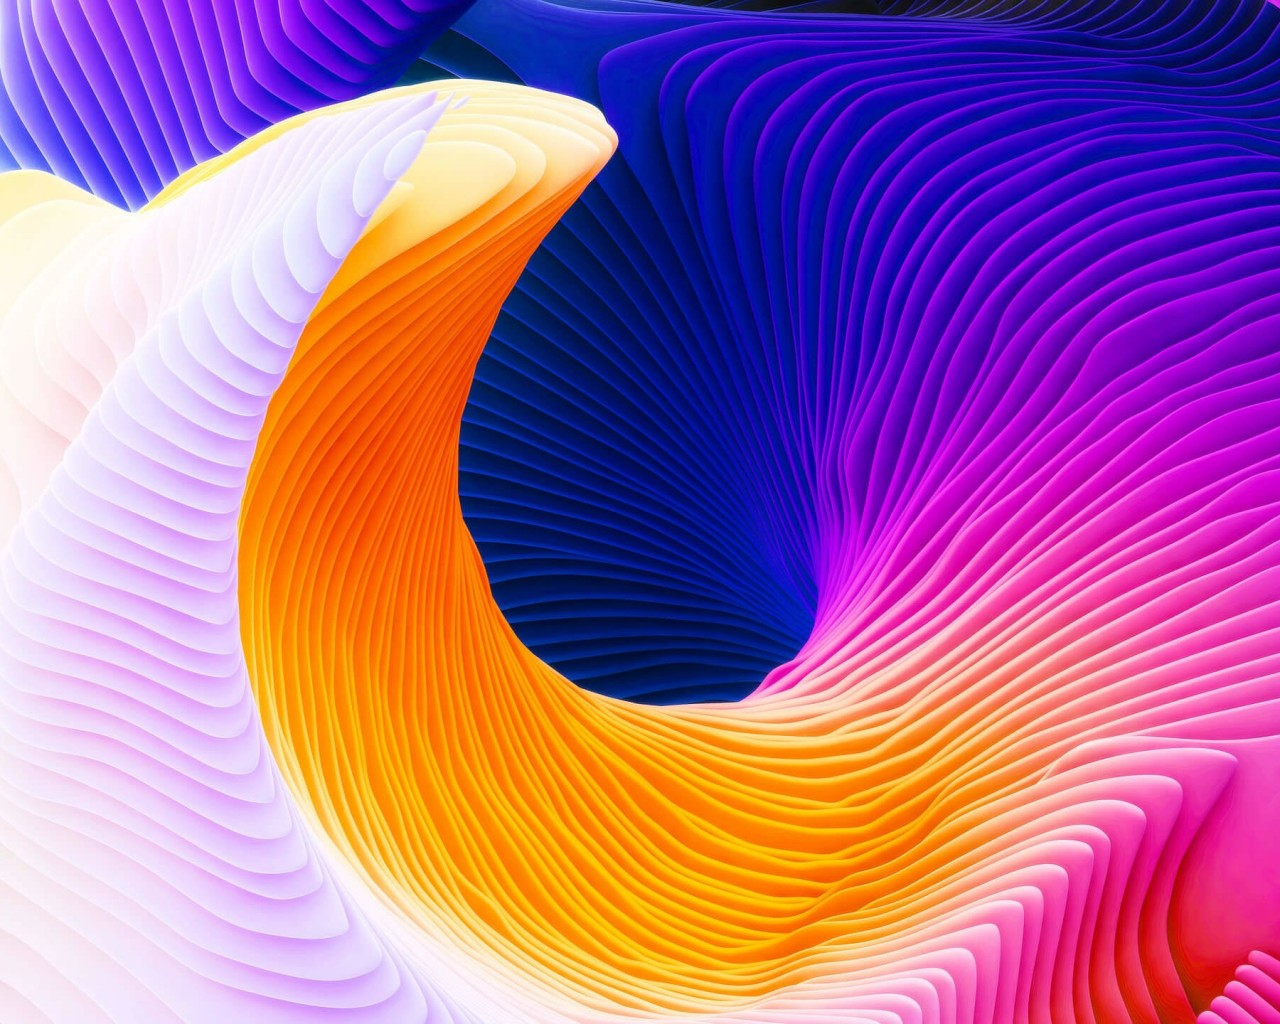 Colorful Spiral Wallpaper for Desktop 1280x1024